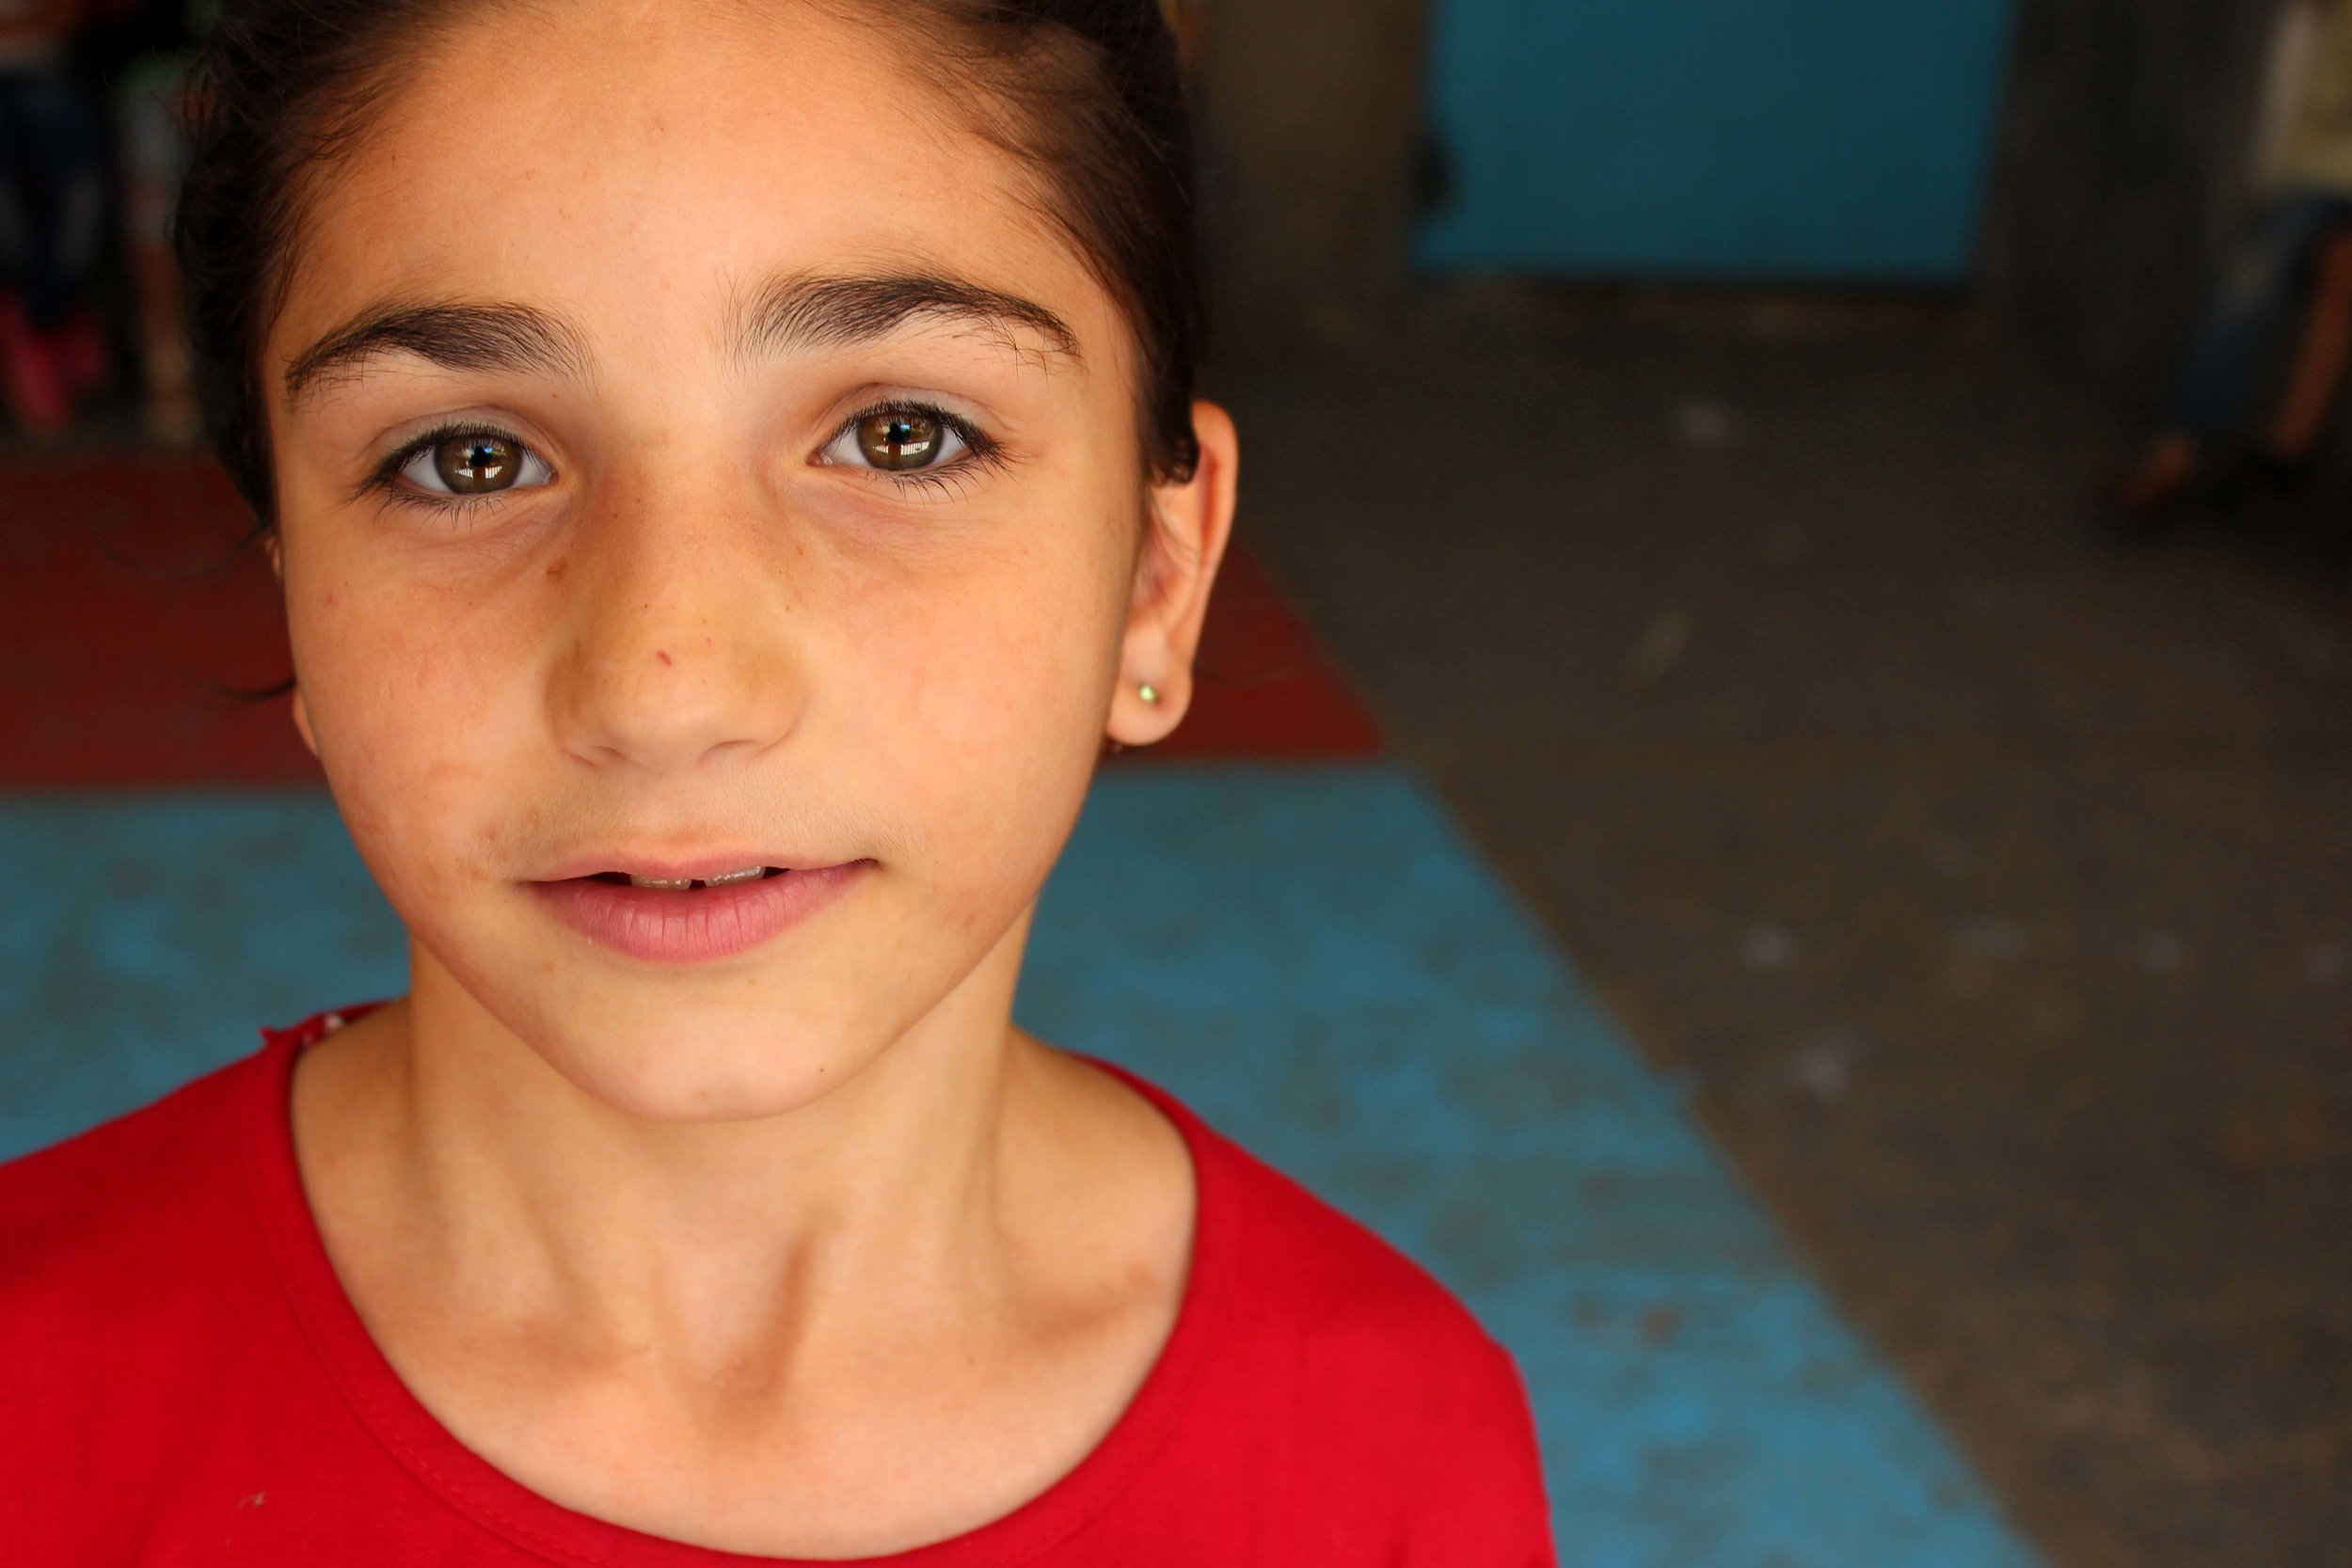 Voices for Syria - Learn more about those impacted by the ongoing conflict in Syria through photos, videos, stories and art.